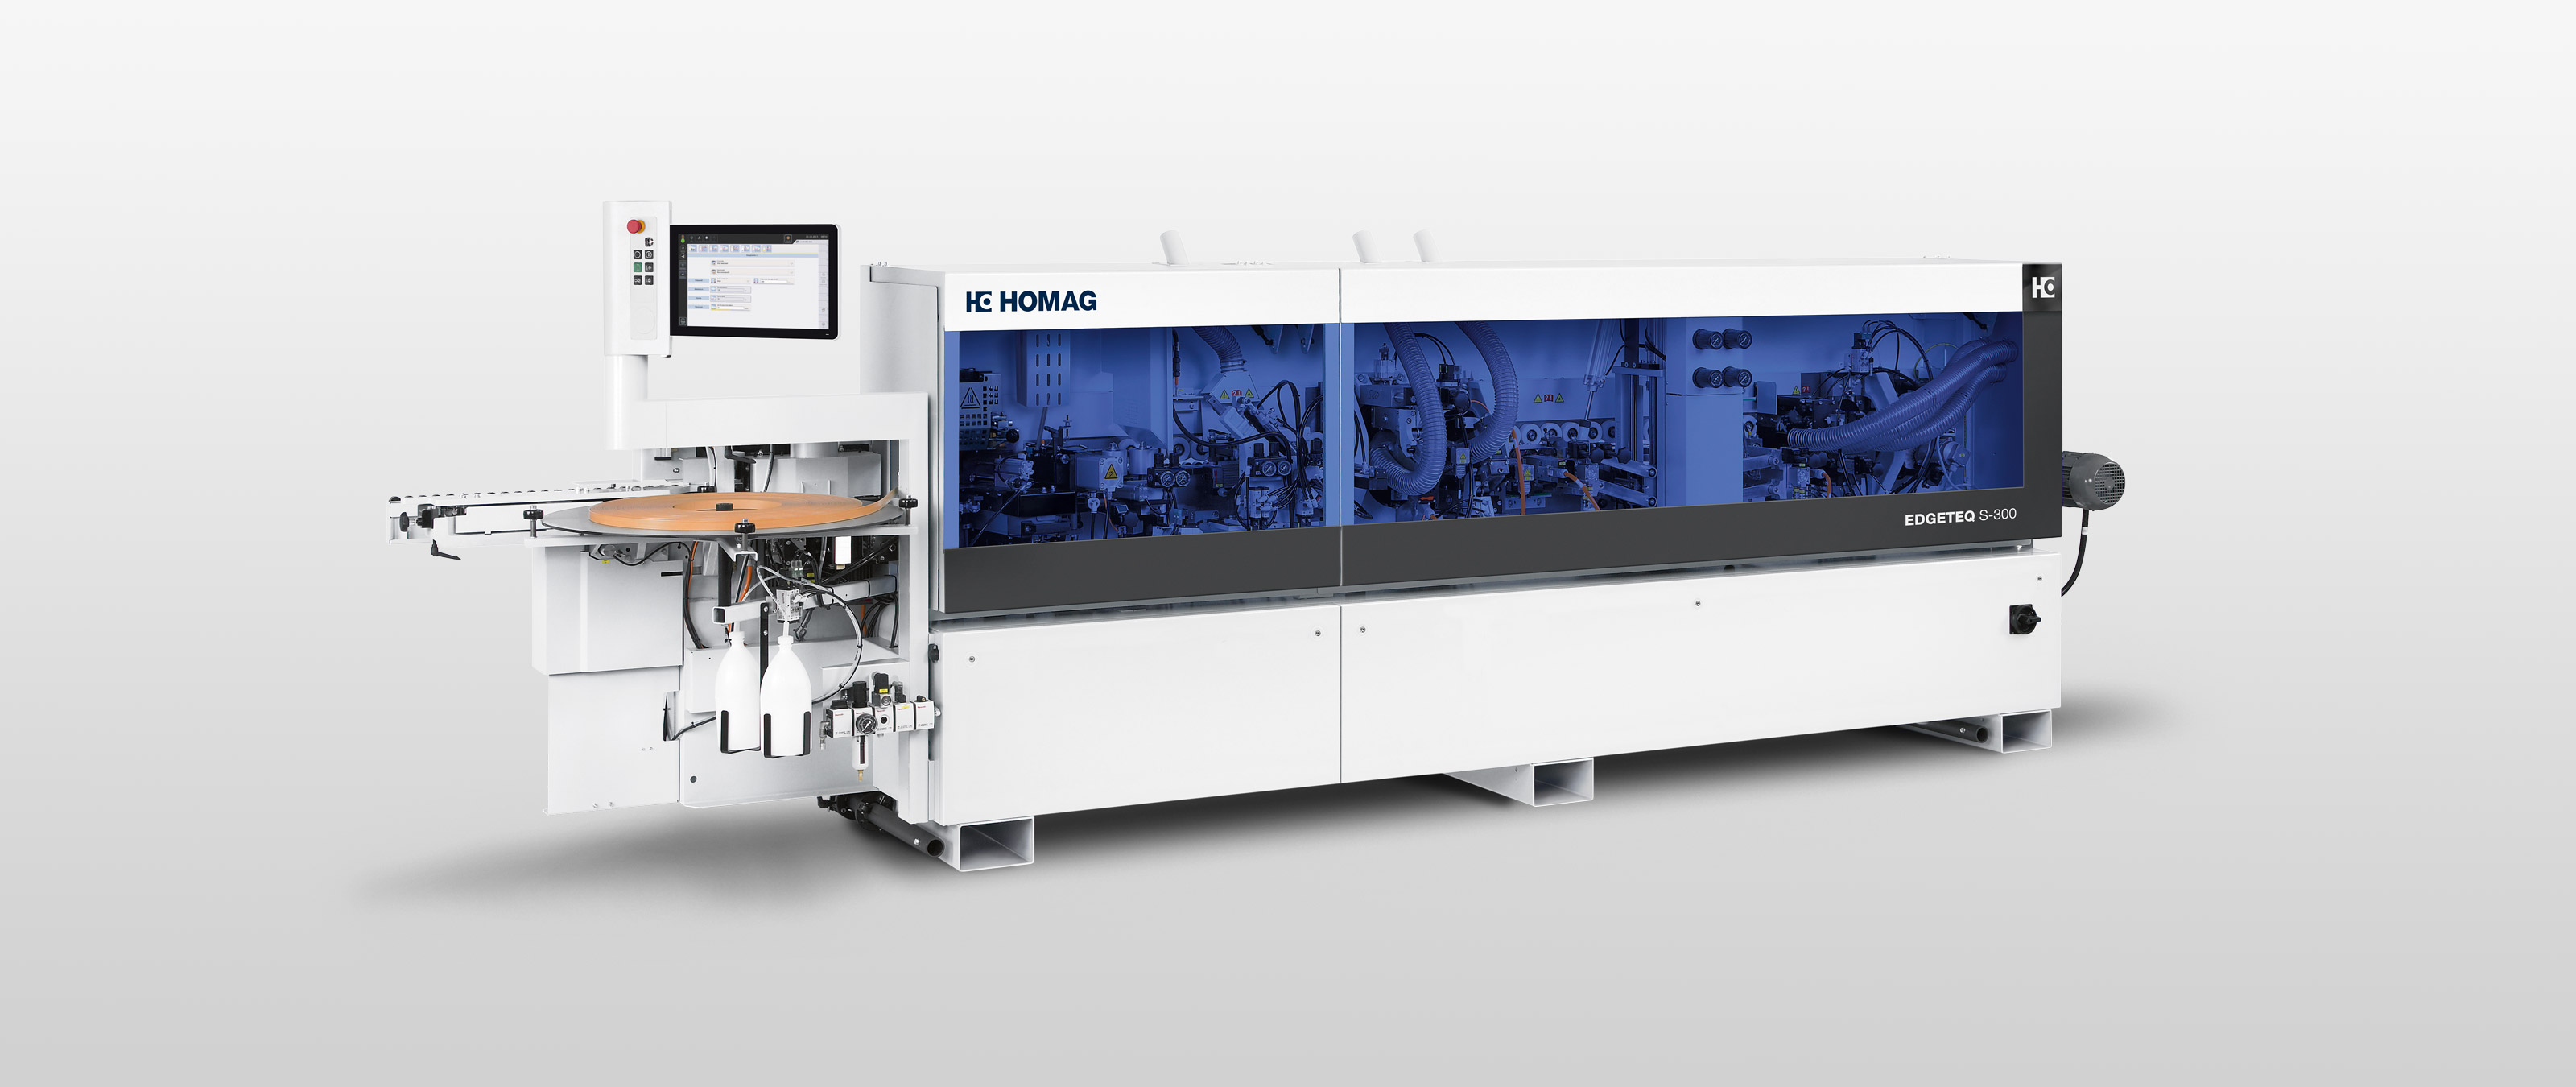 Edge-banding-machine EDGETEQ S-300 from BRANDT